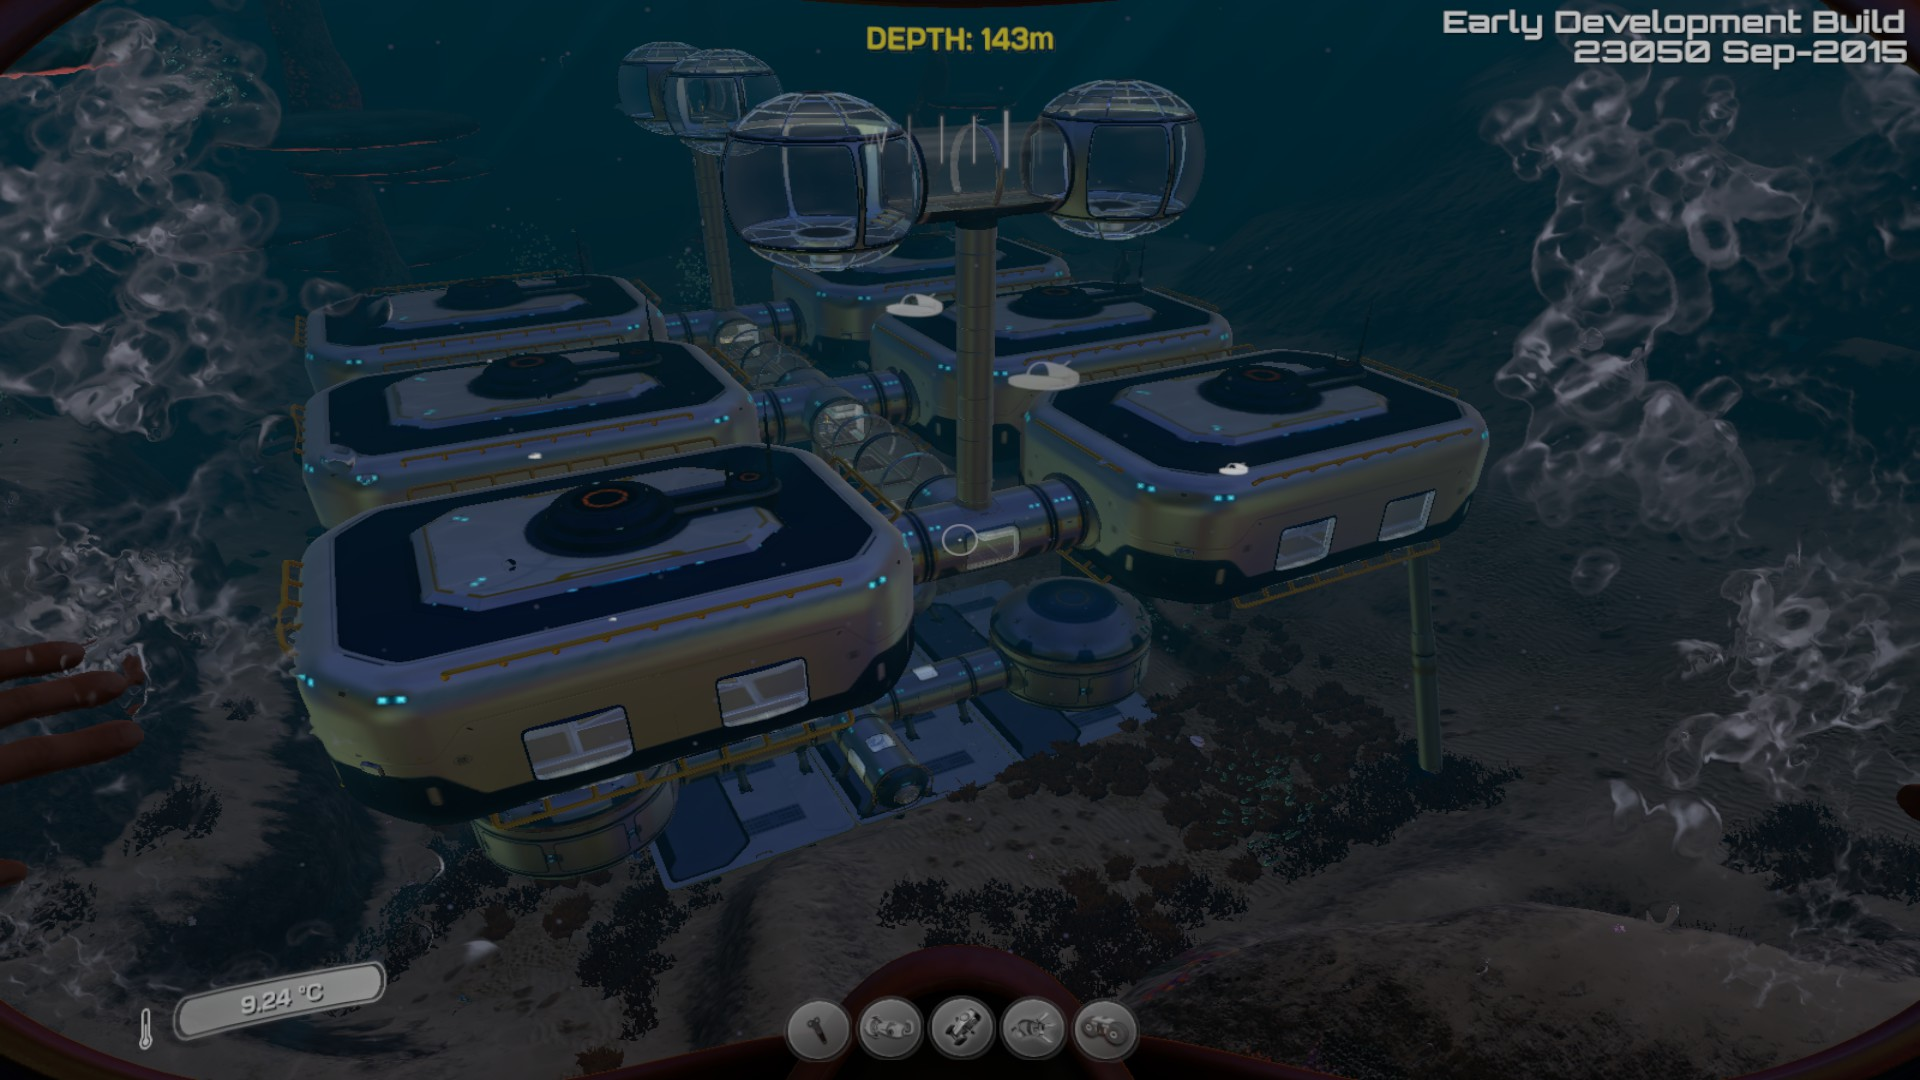 Steam community guide subnautica seabase planning resource steam community guide subnautica seabase planning resource and hull strength calculator updated 26082016 malvernweather Image collections